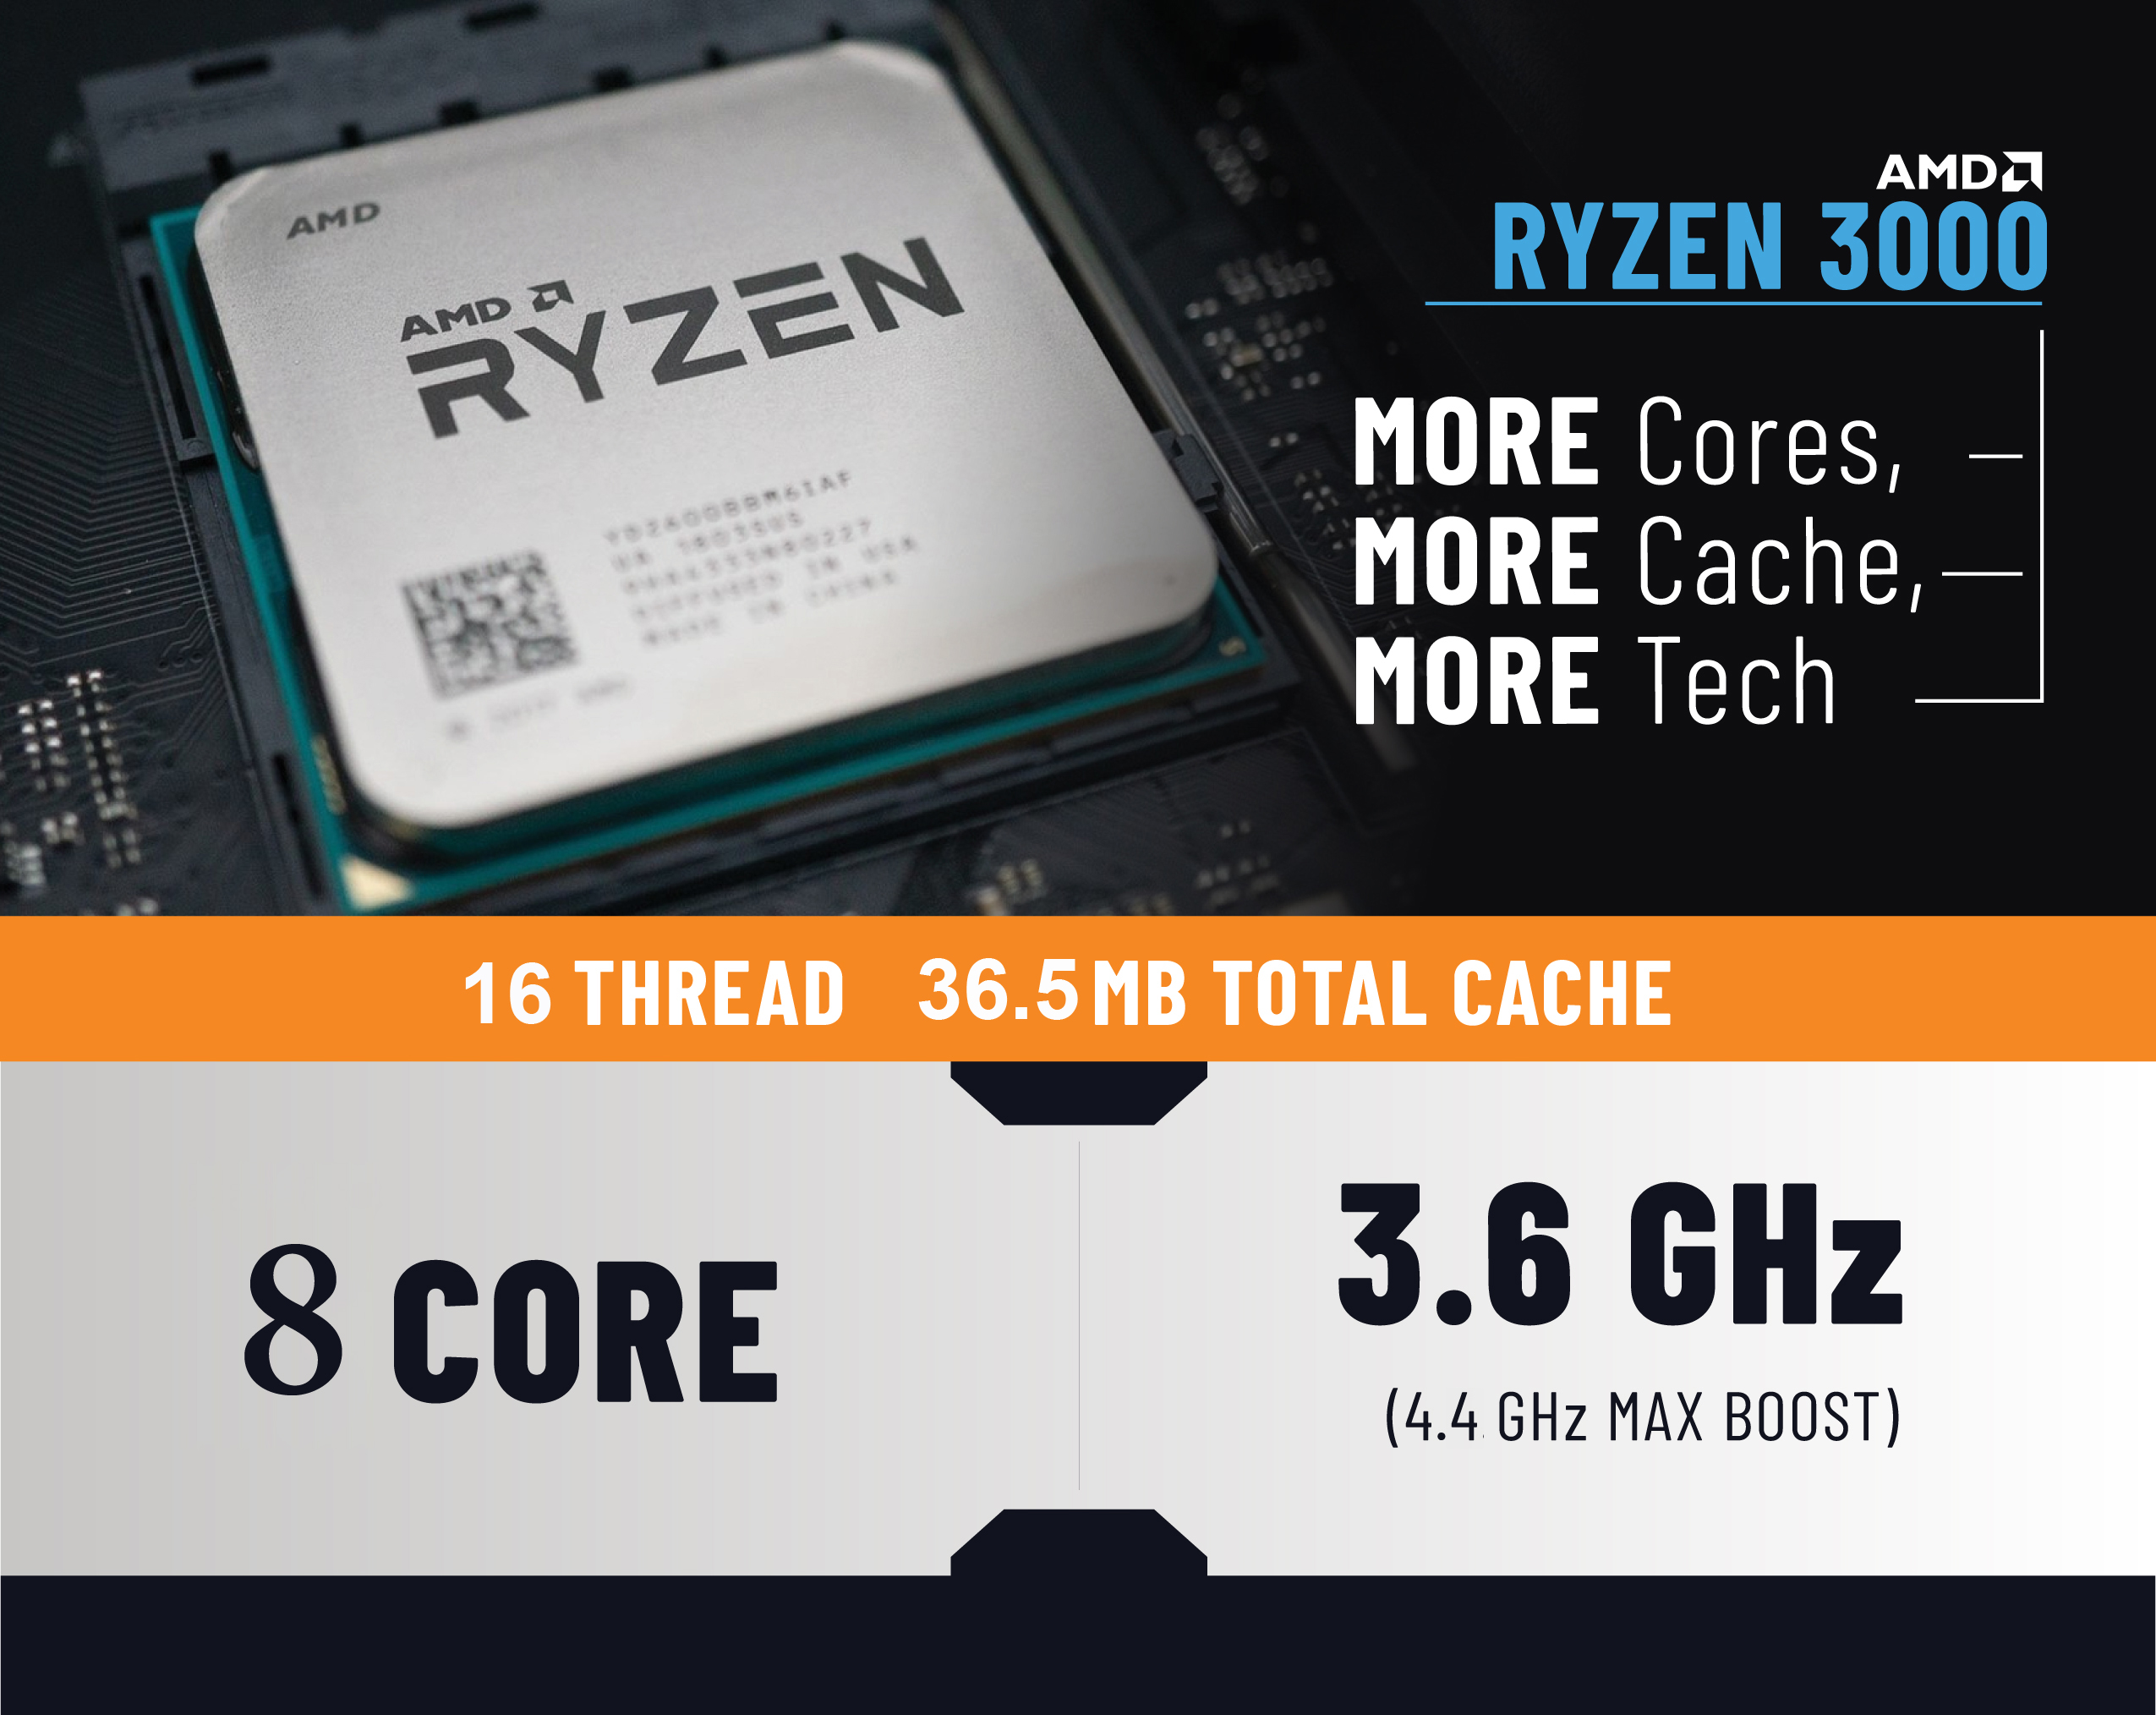 A Ryzen 3000 processor is next to reading more cores, more cache, and more tech. Below it are the exact number of cores, threads, cache and clocks.